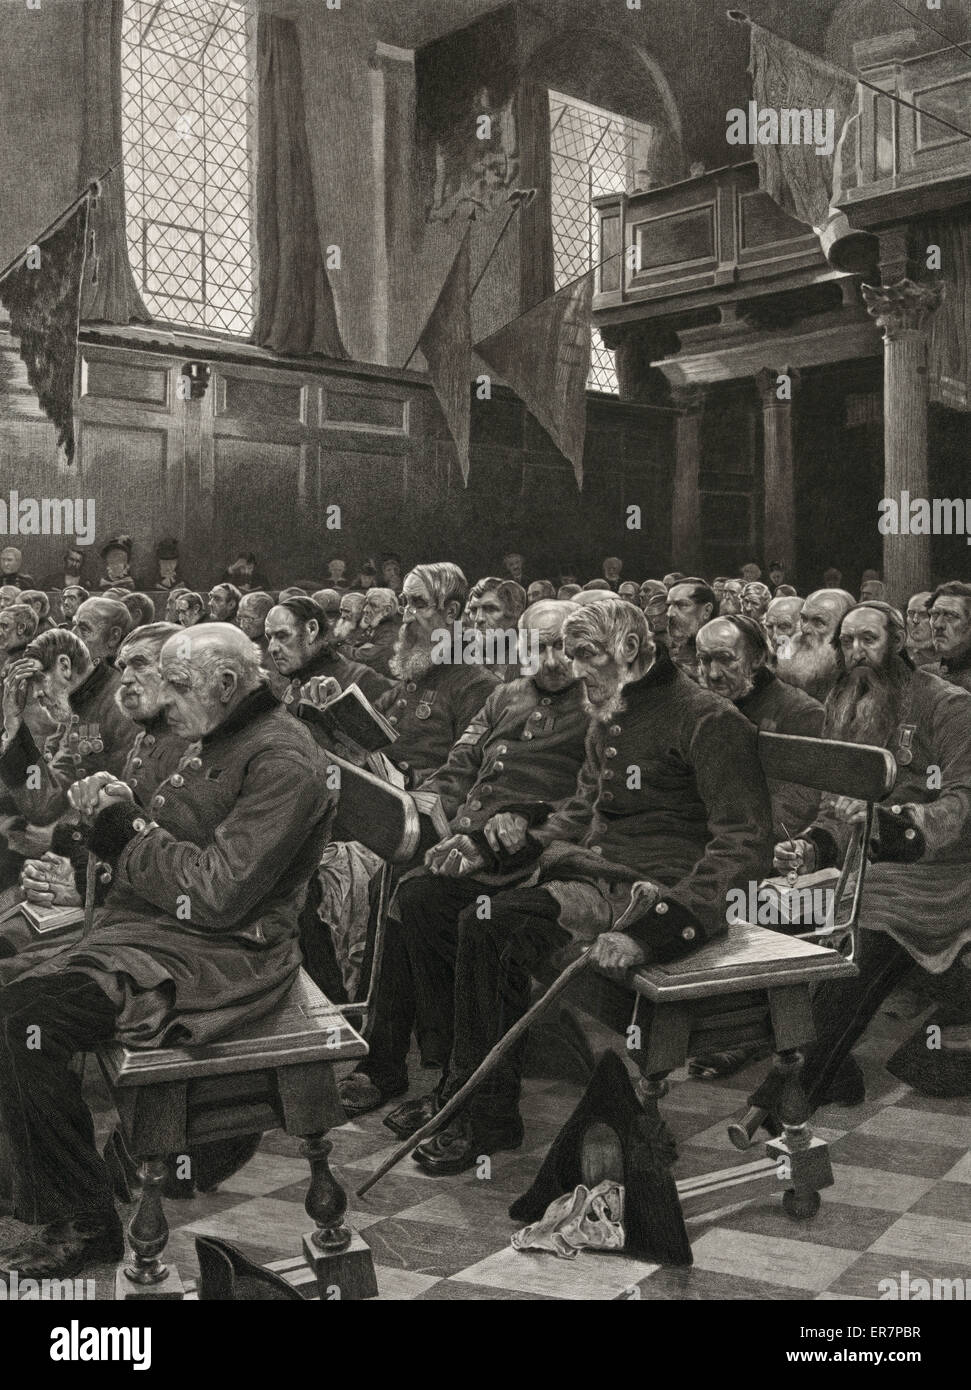 The last muster. Print showing old soldiers sitting in the chapel at the Royal Hospital in Chelsea. Date c1878 October - Stock Image